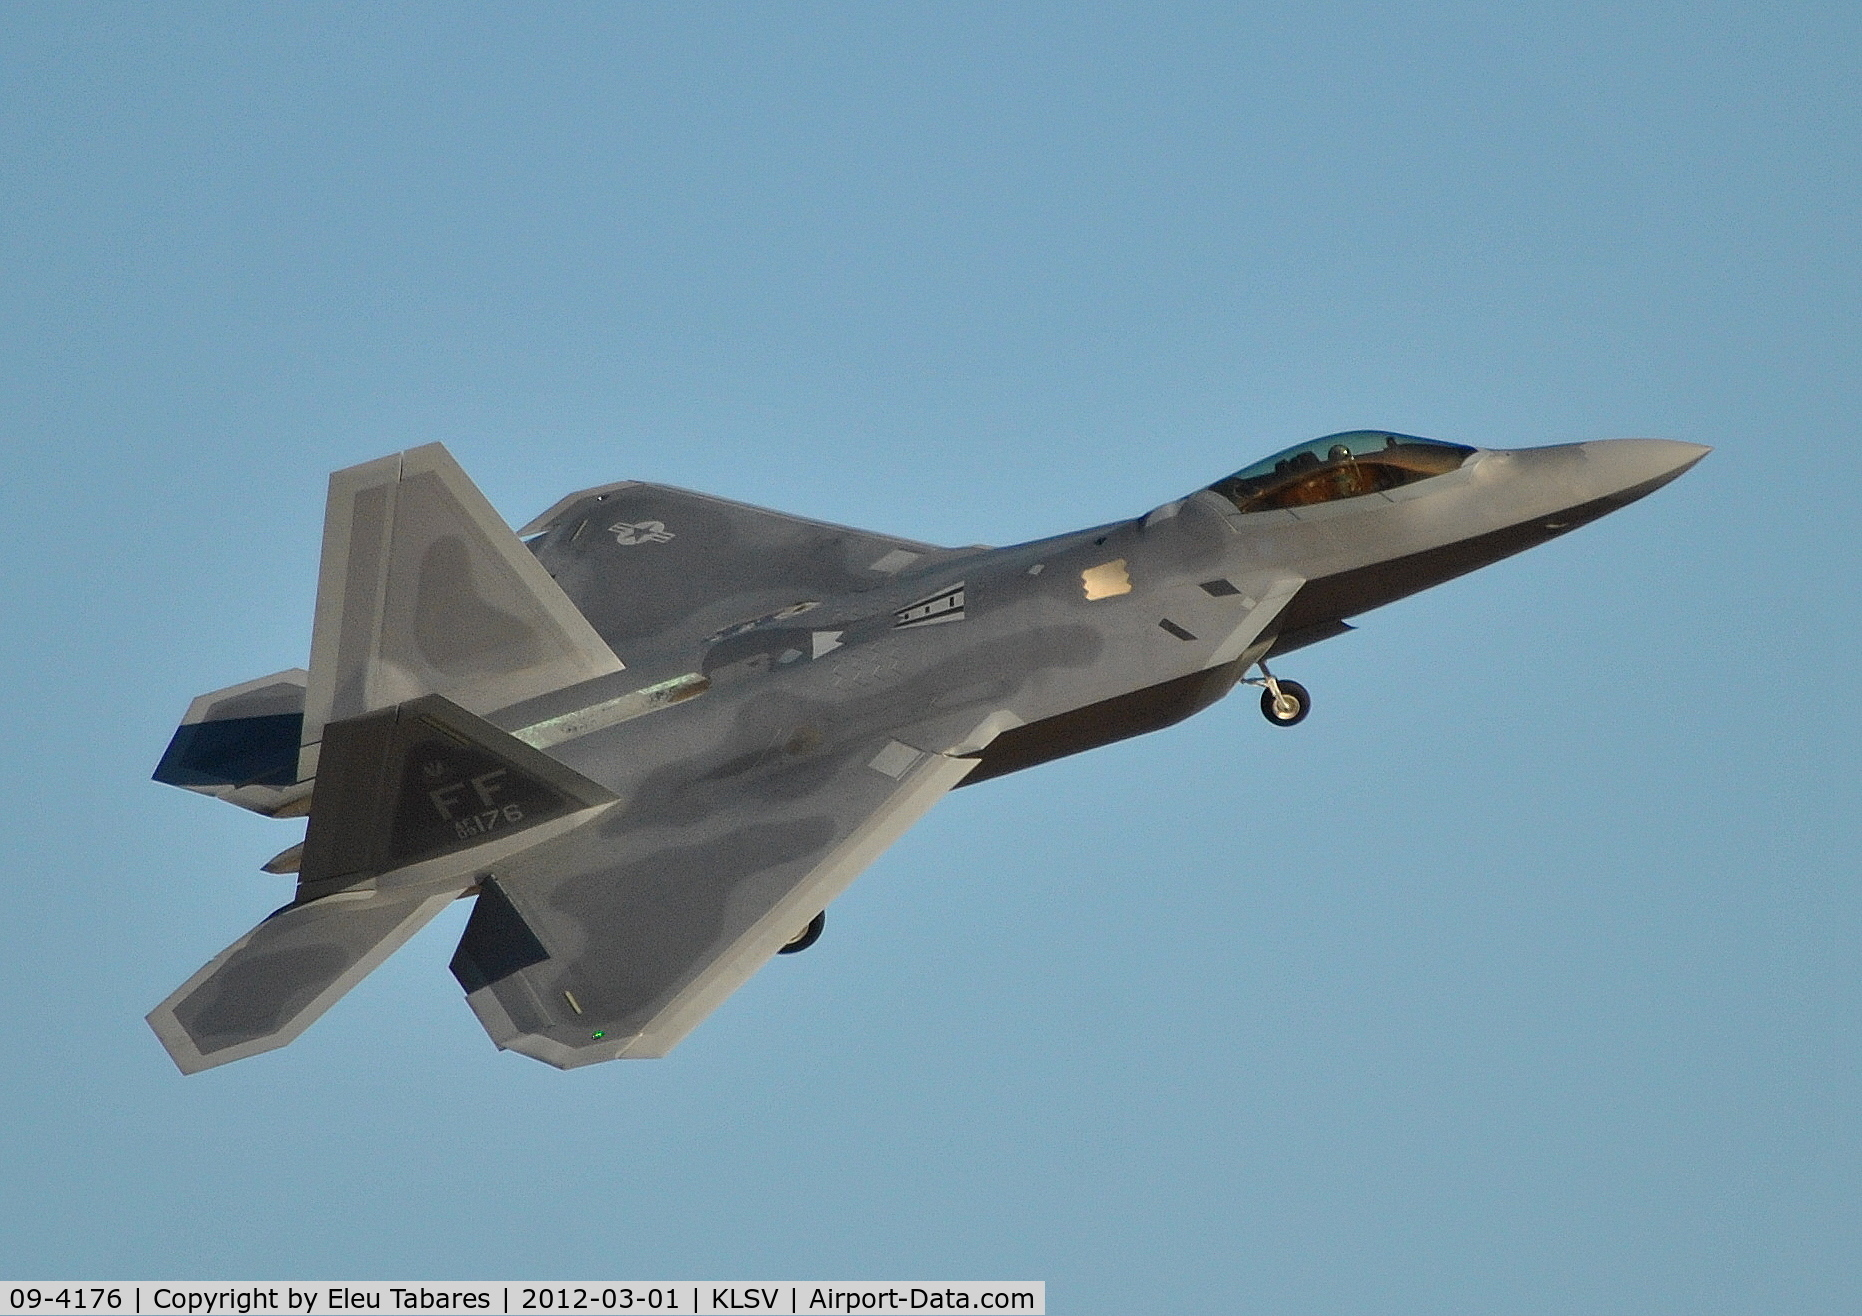 09-4176, Lockheed Martin F-22A Raptor C/N 4176, Taken during Red Flag Exercise at Nellis Air Force Base, Nevada.